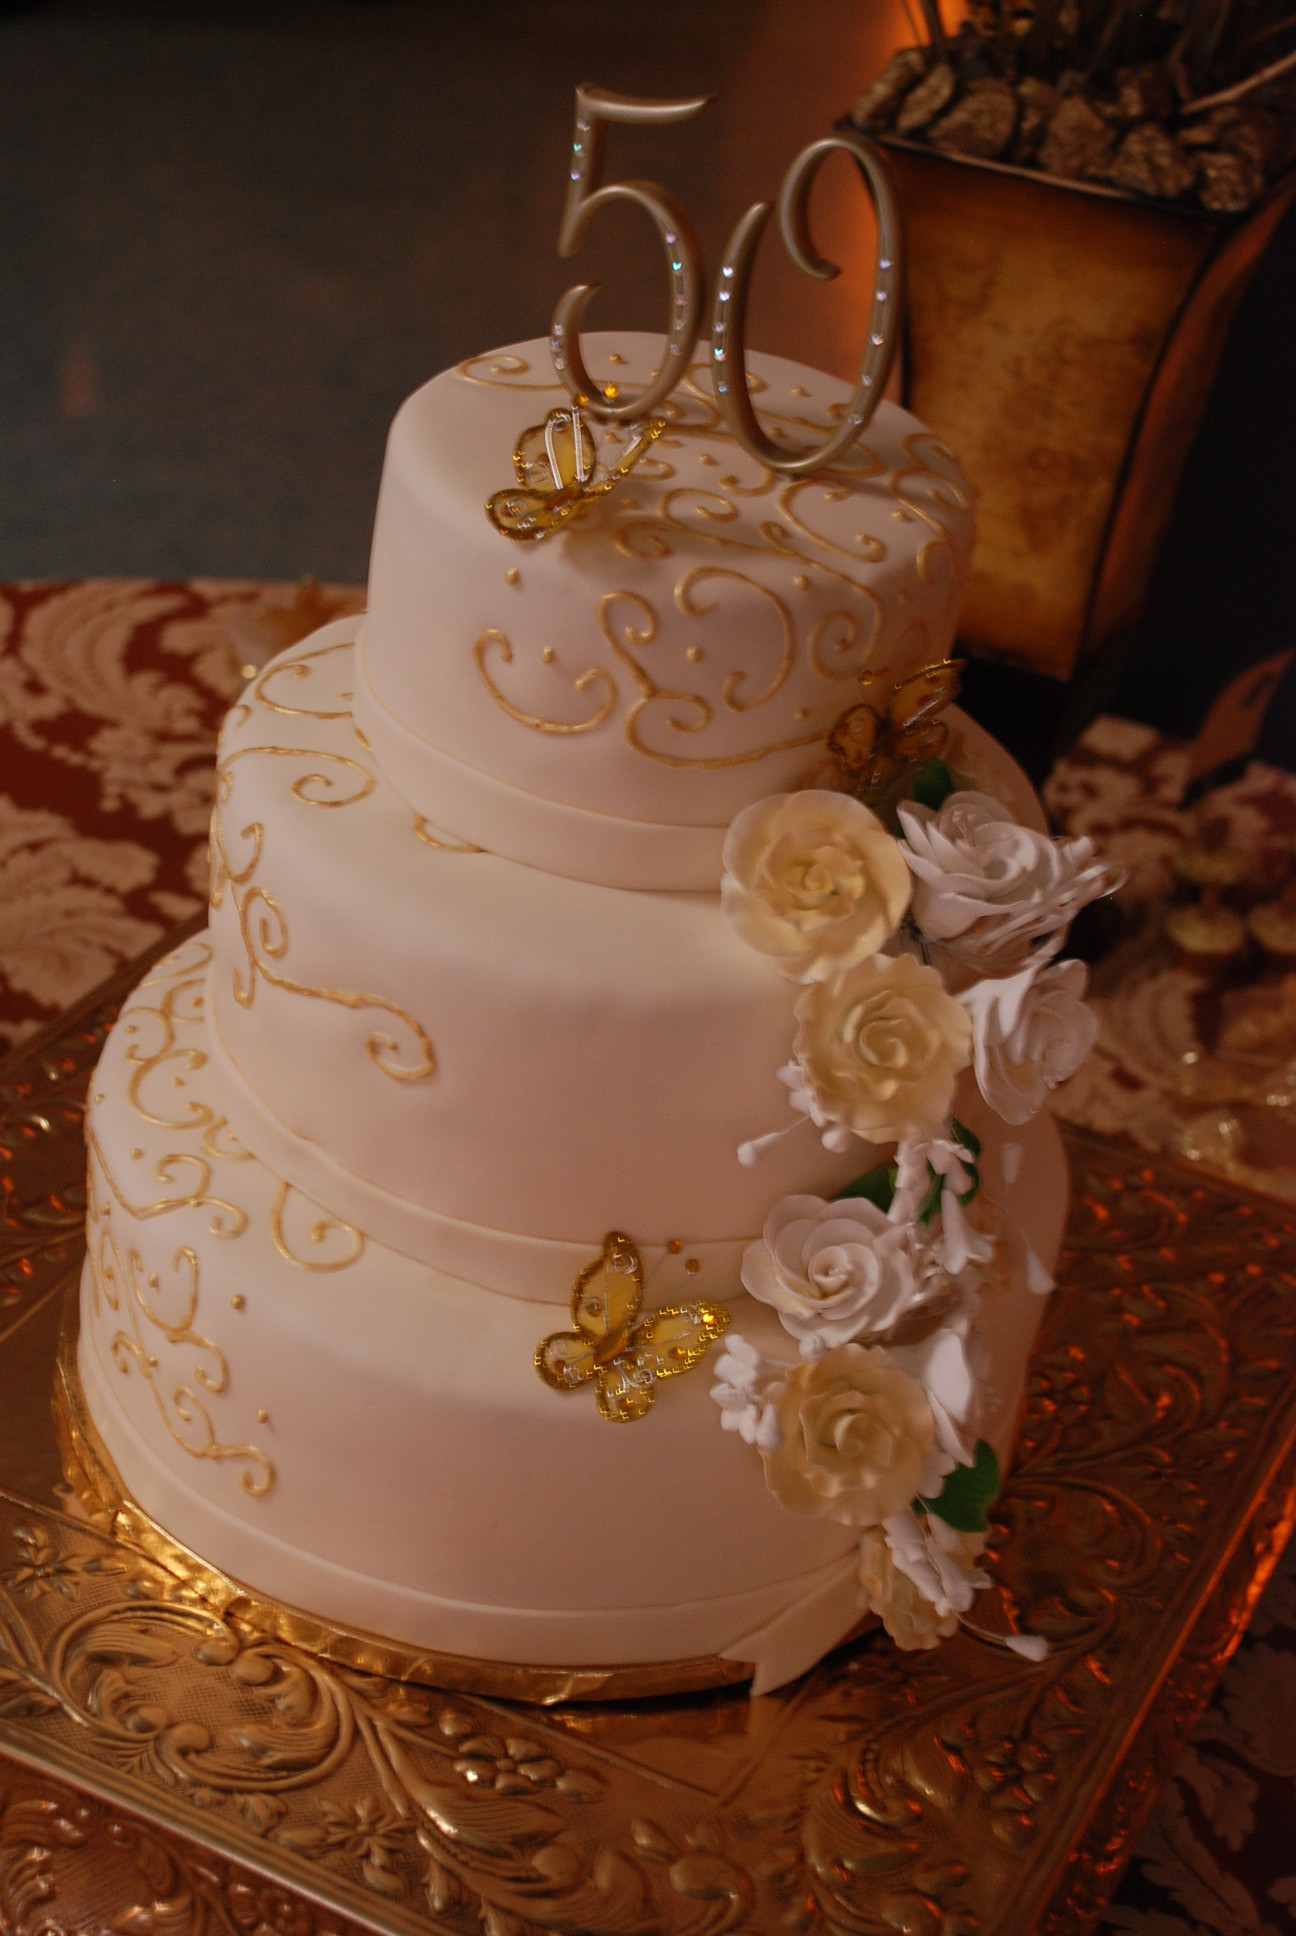 50th Birthday Cake Ideas For Her  50th Birthday in Gold